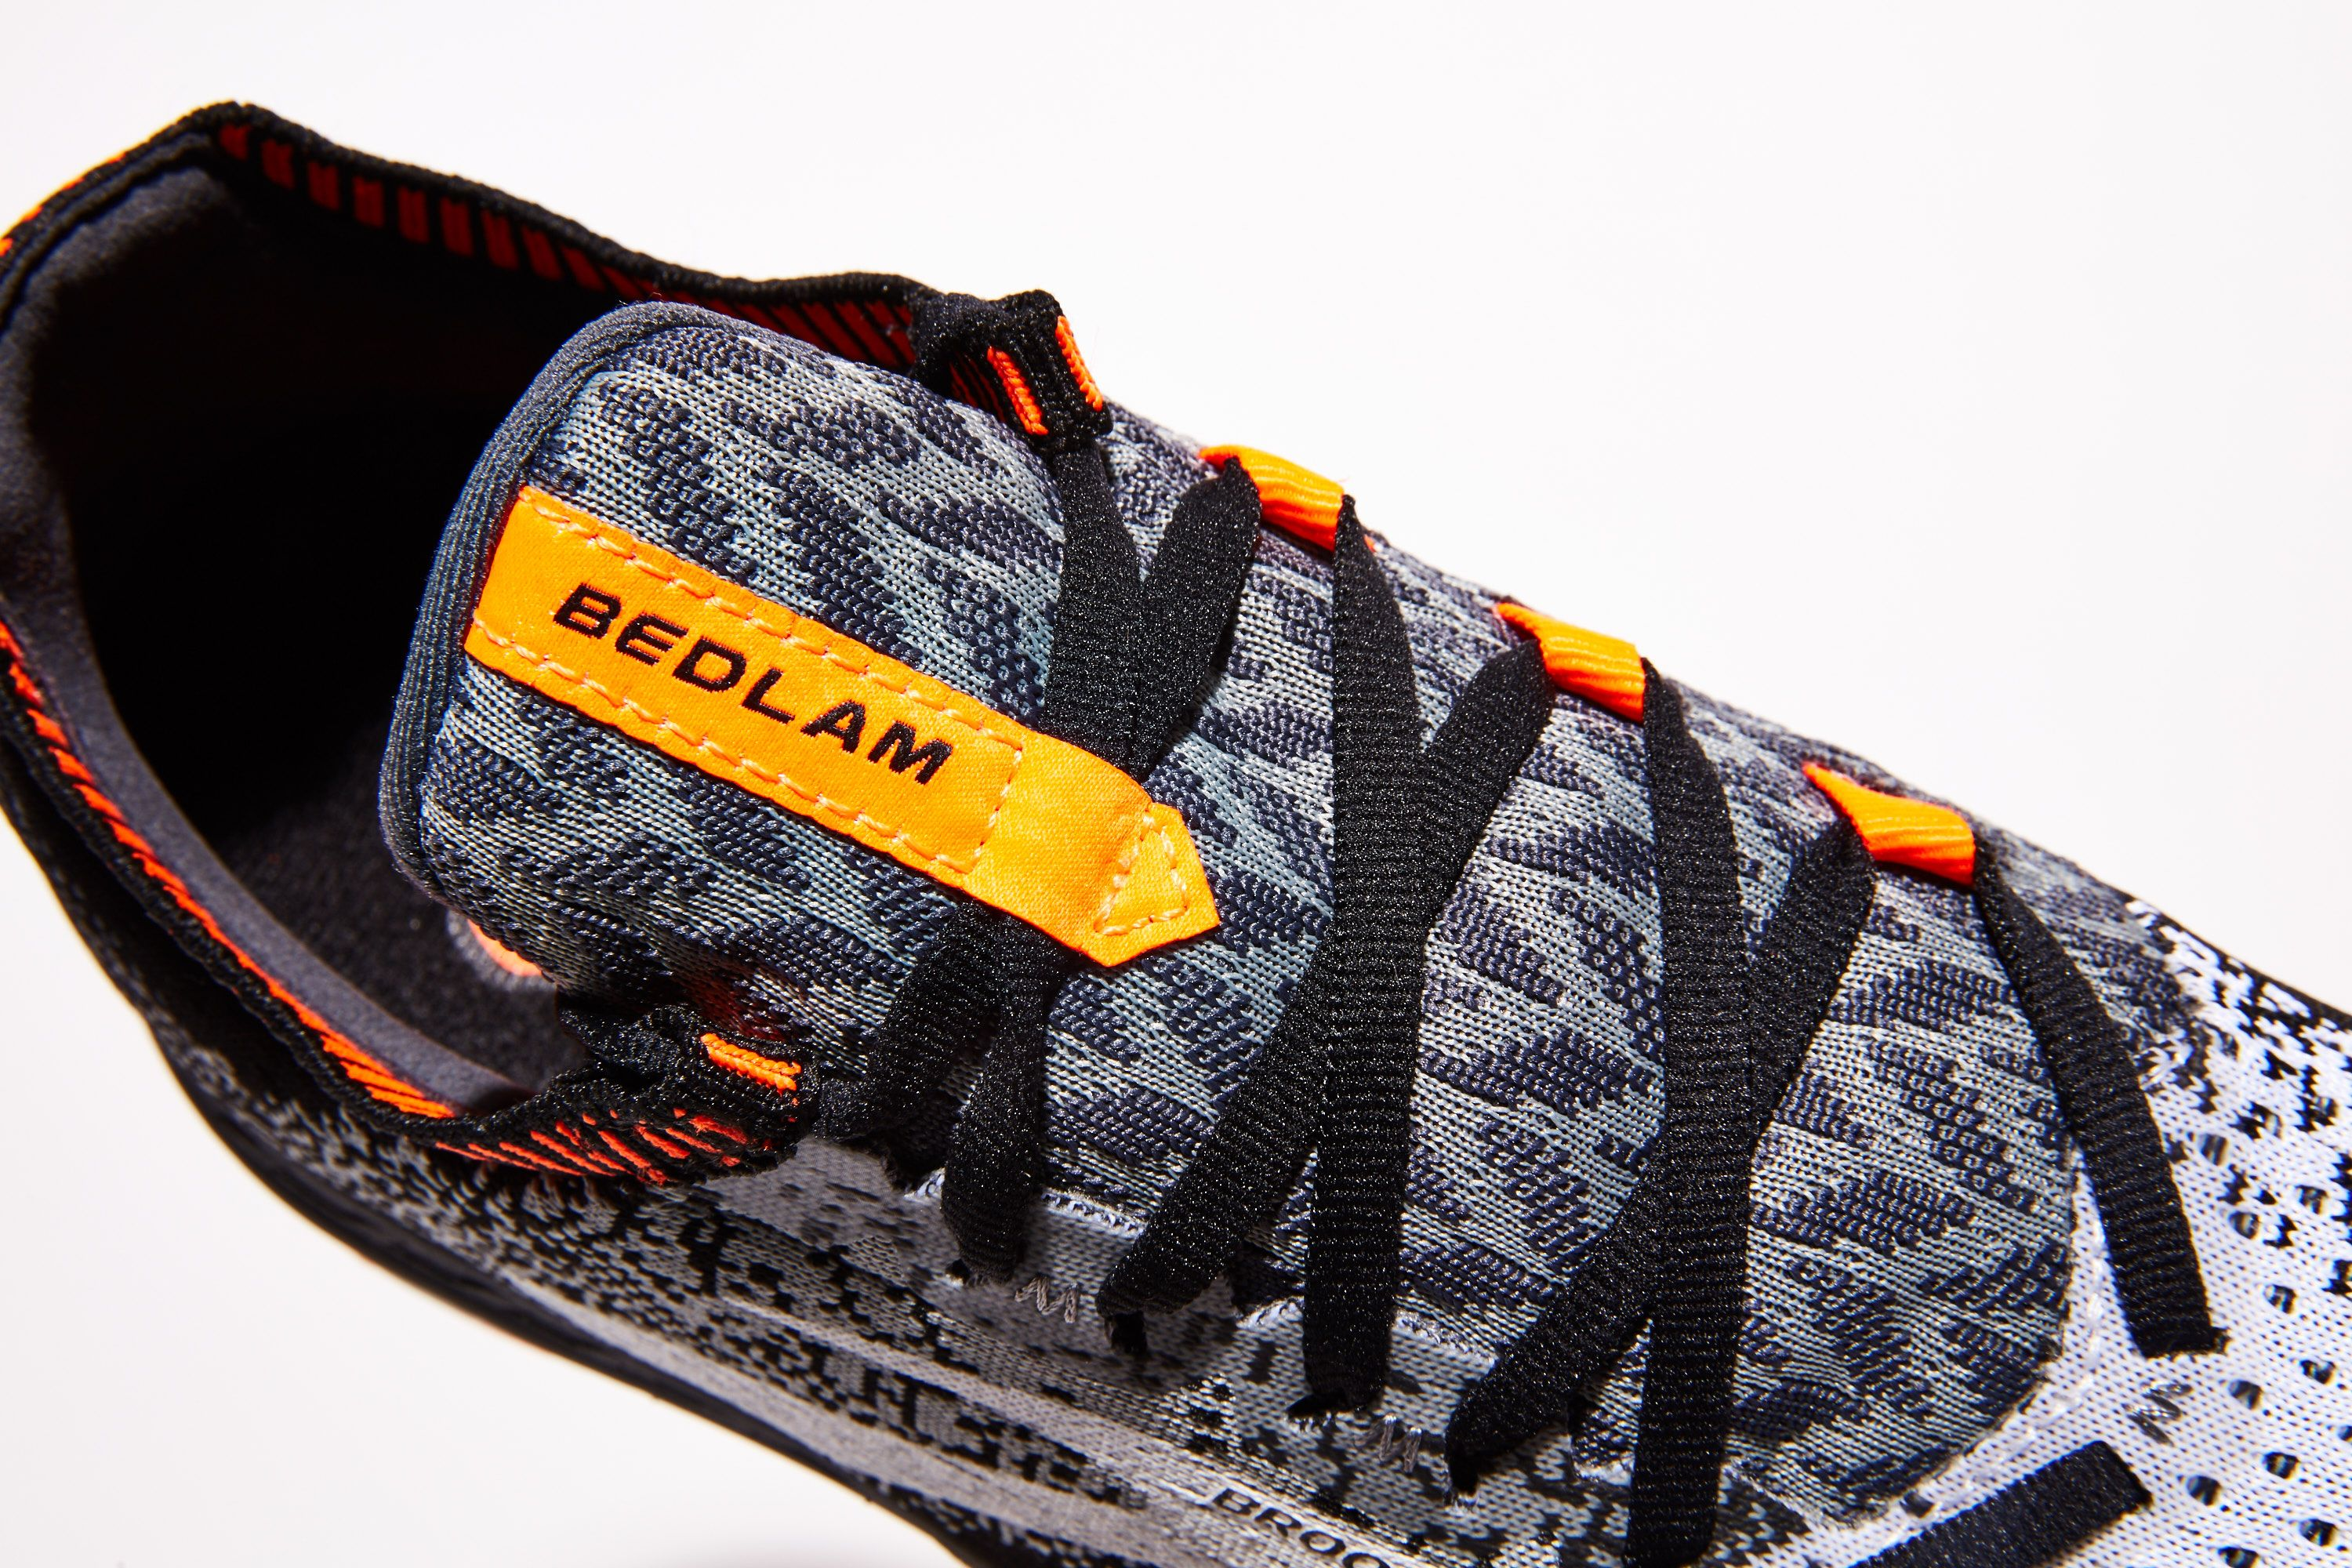 71a9921733a97 Brooks Bedlam Review - Stability Running Shoes